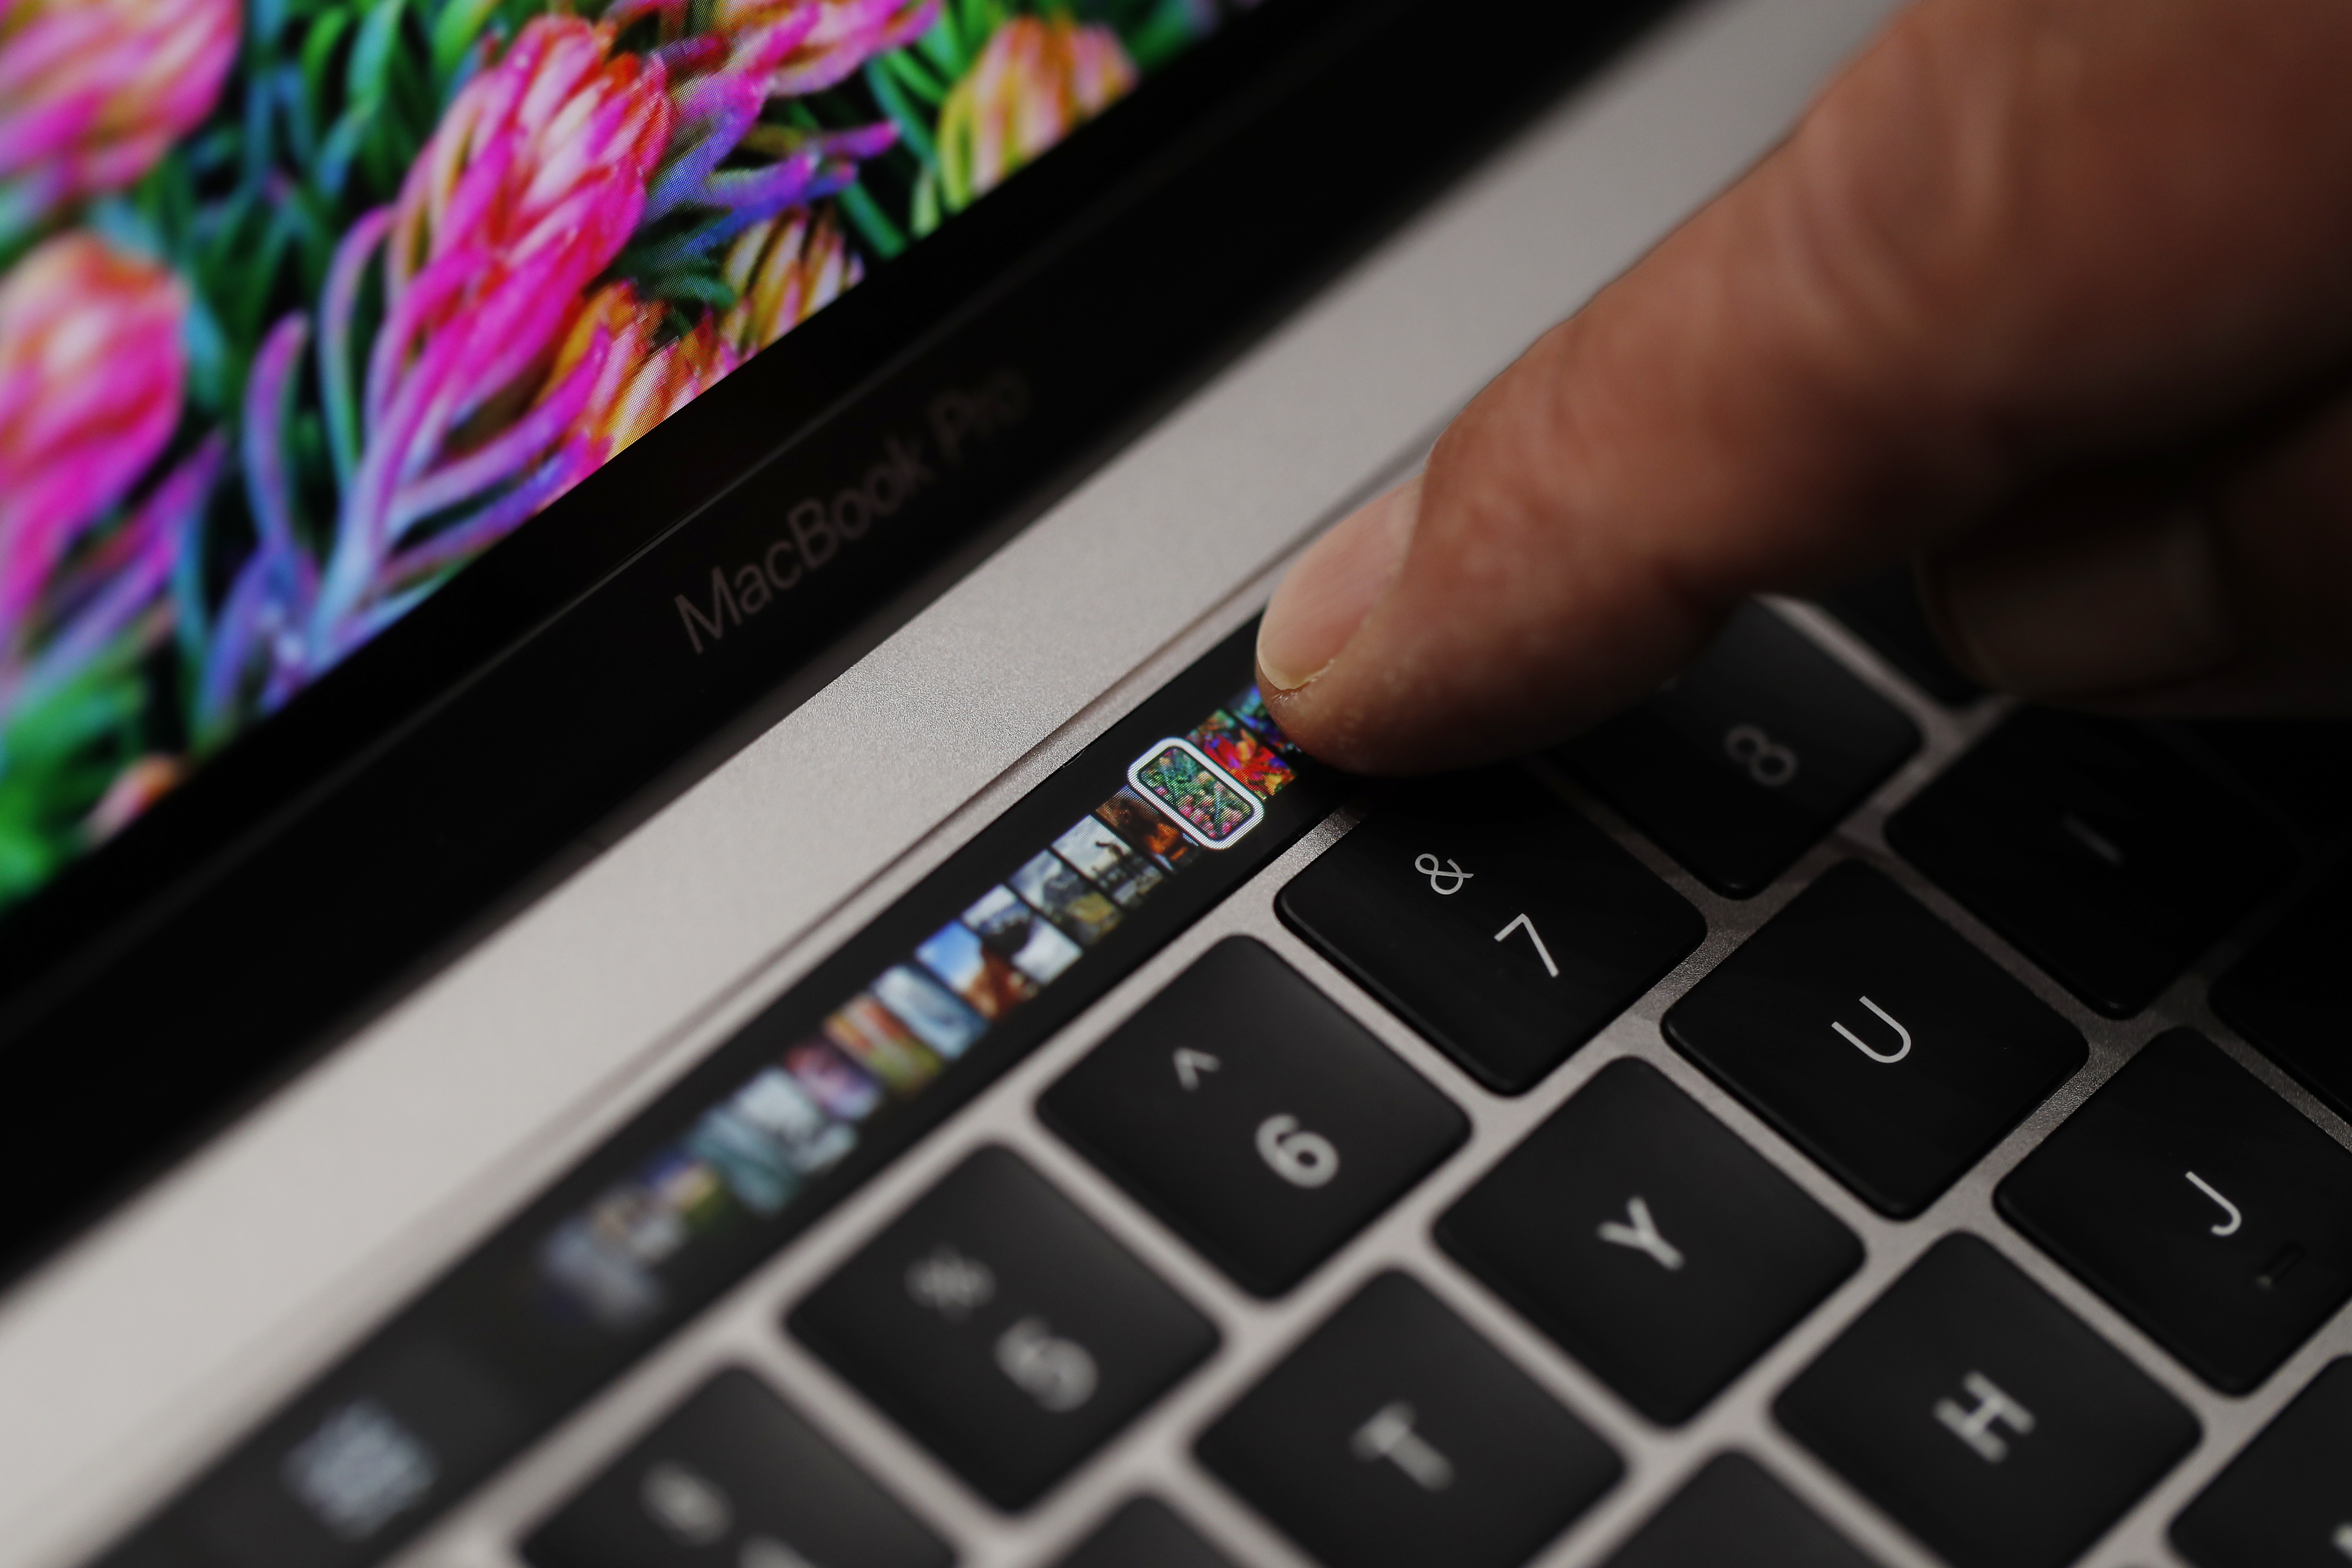 An Apple employee points to the Touch Bar on a new Apple MacBook Pro laptop during a product launch event on October 27, 2016 in Cupertino, California.